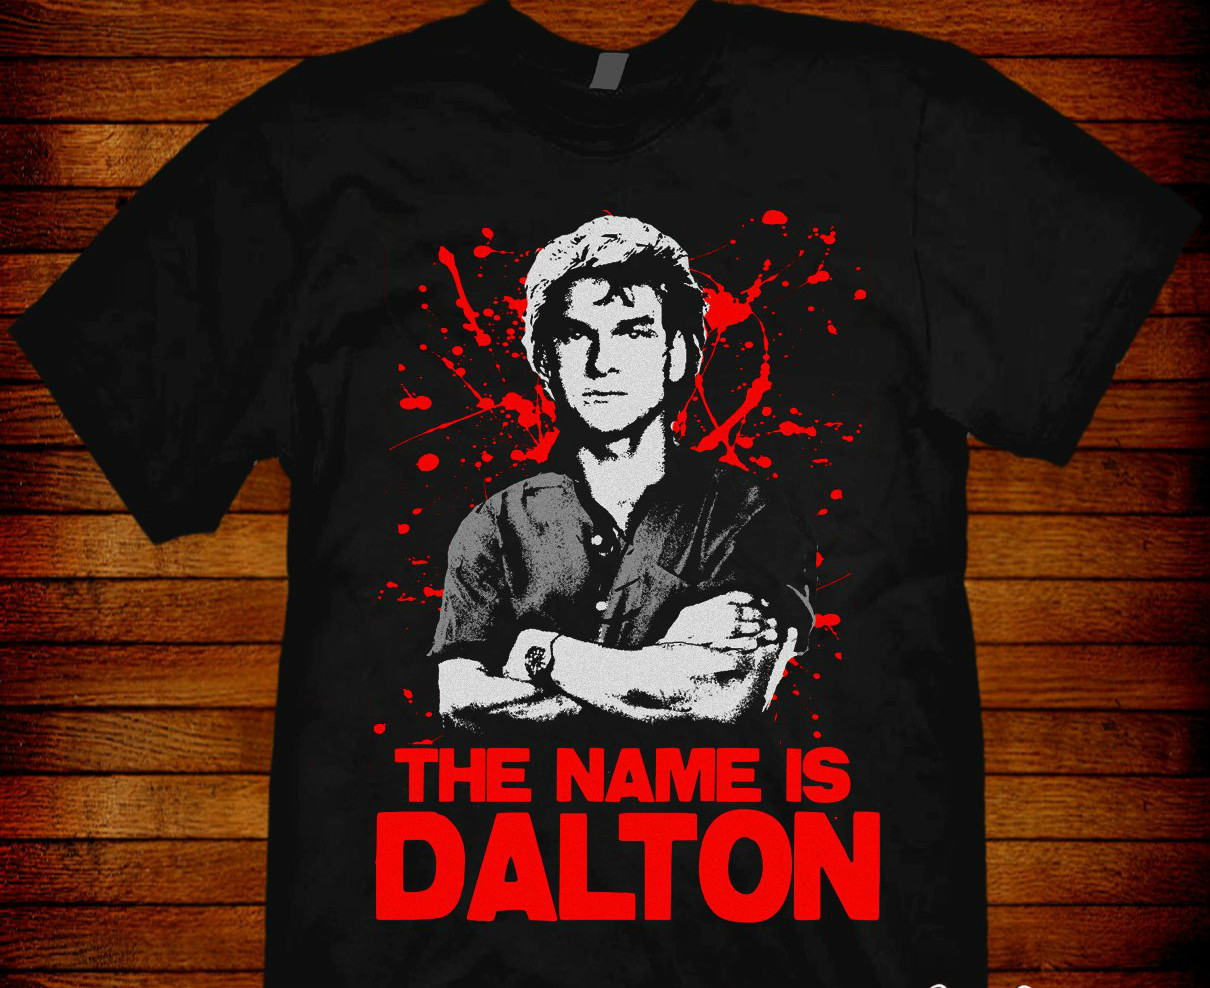 Road House T-shirt Dalton based on the 1989 movie starring Patrick Swayze. Sizes S M L Xl 2xl 3xl